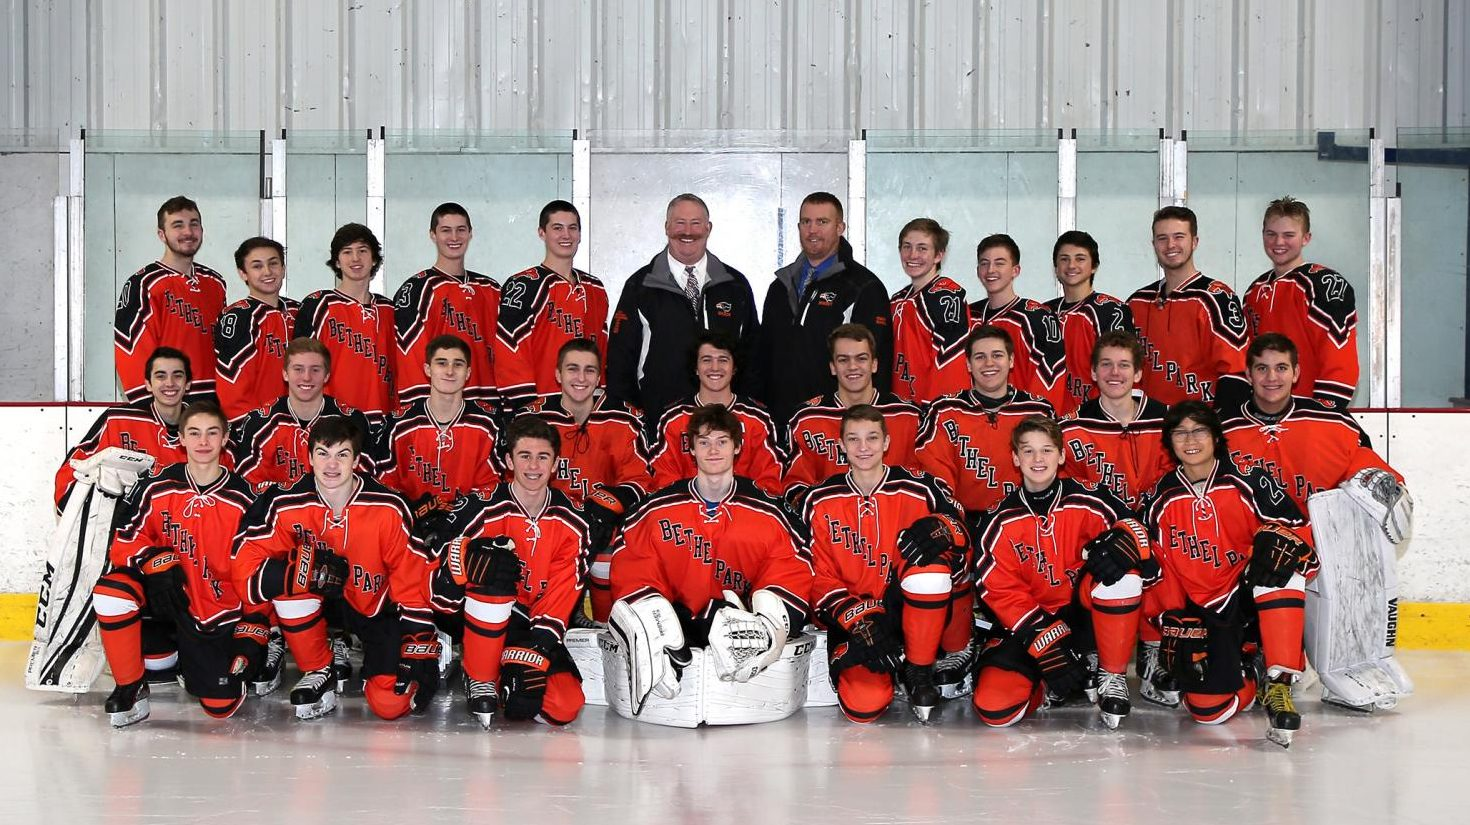 Varsity hockey team poses for a pic.